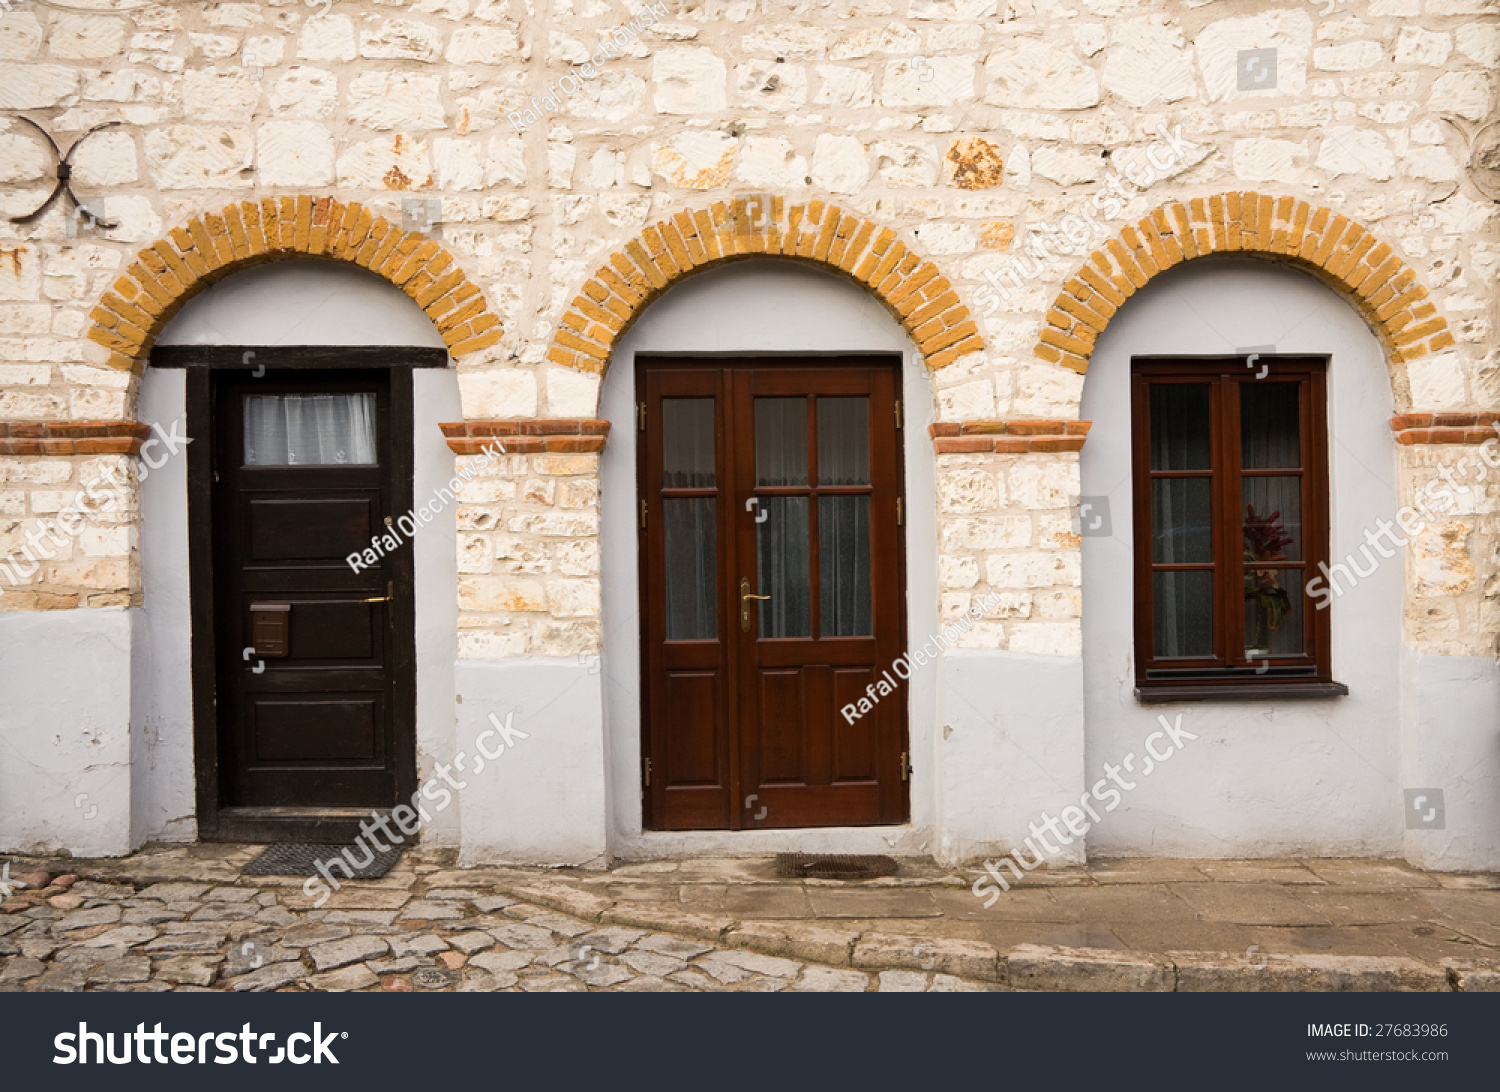 Vintage stone building facade with dark wood doors and for Stone building facade